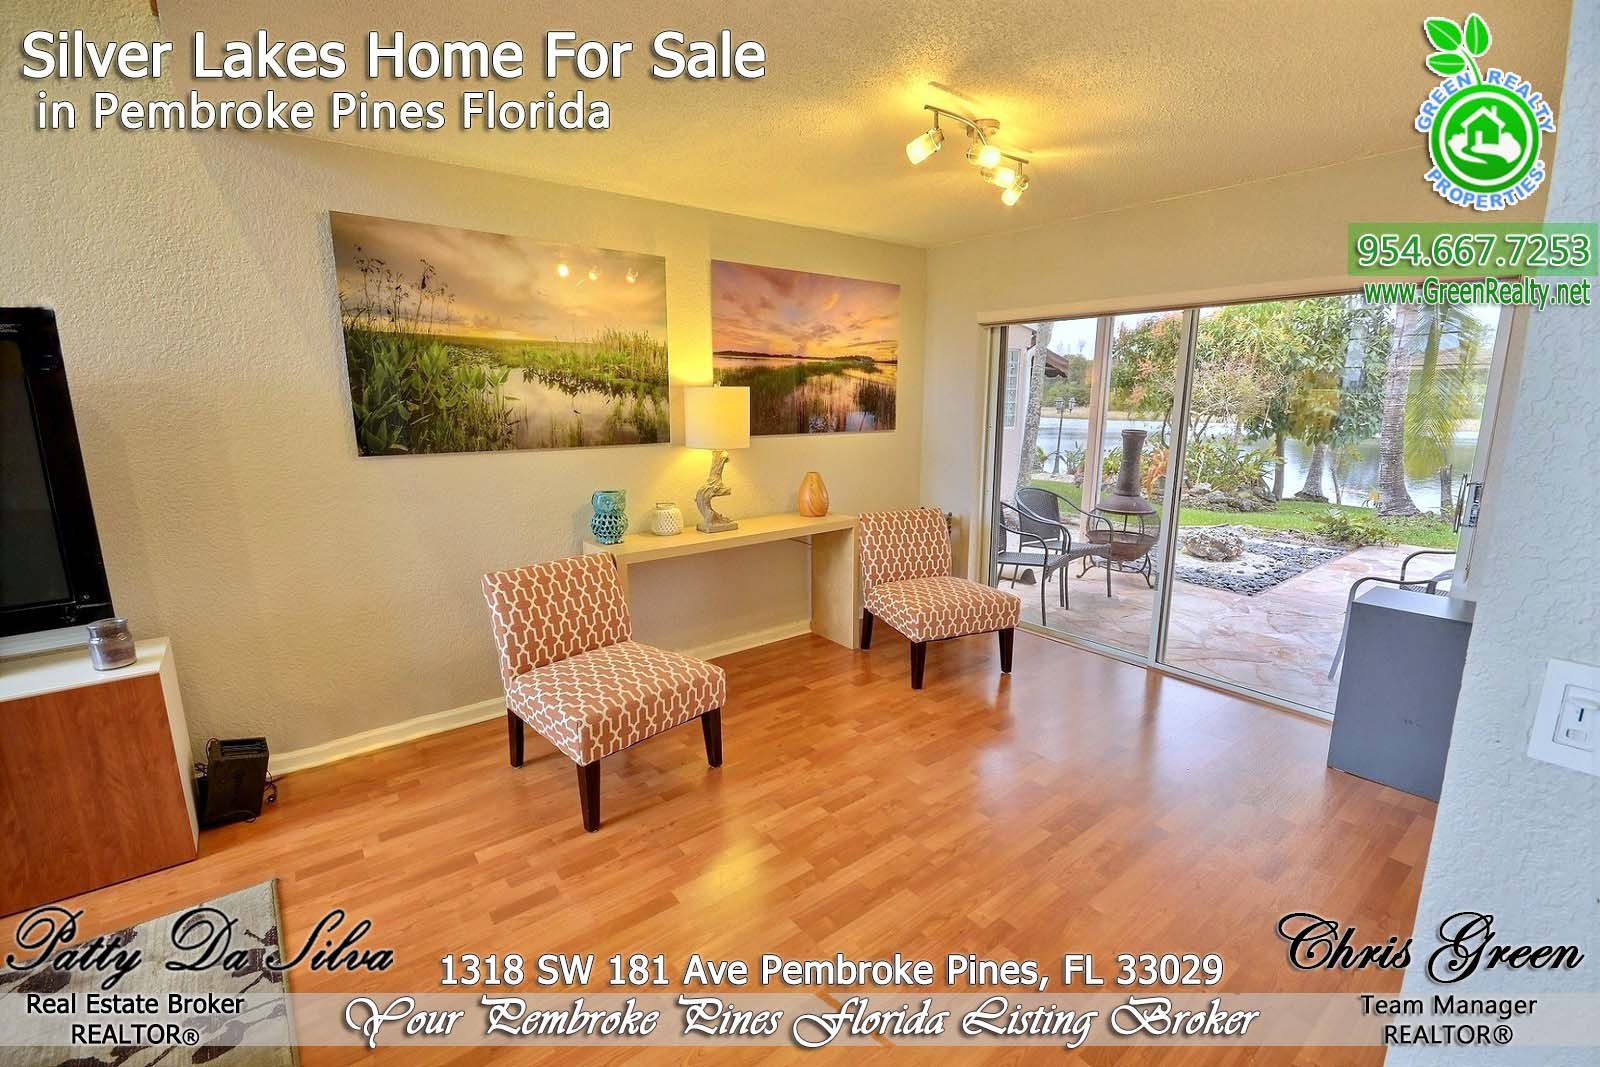 7 Pembroke Pines Real Estate in Silver Lakes (4)